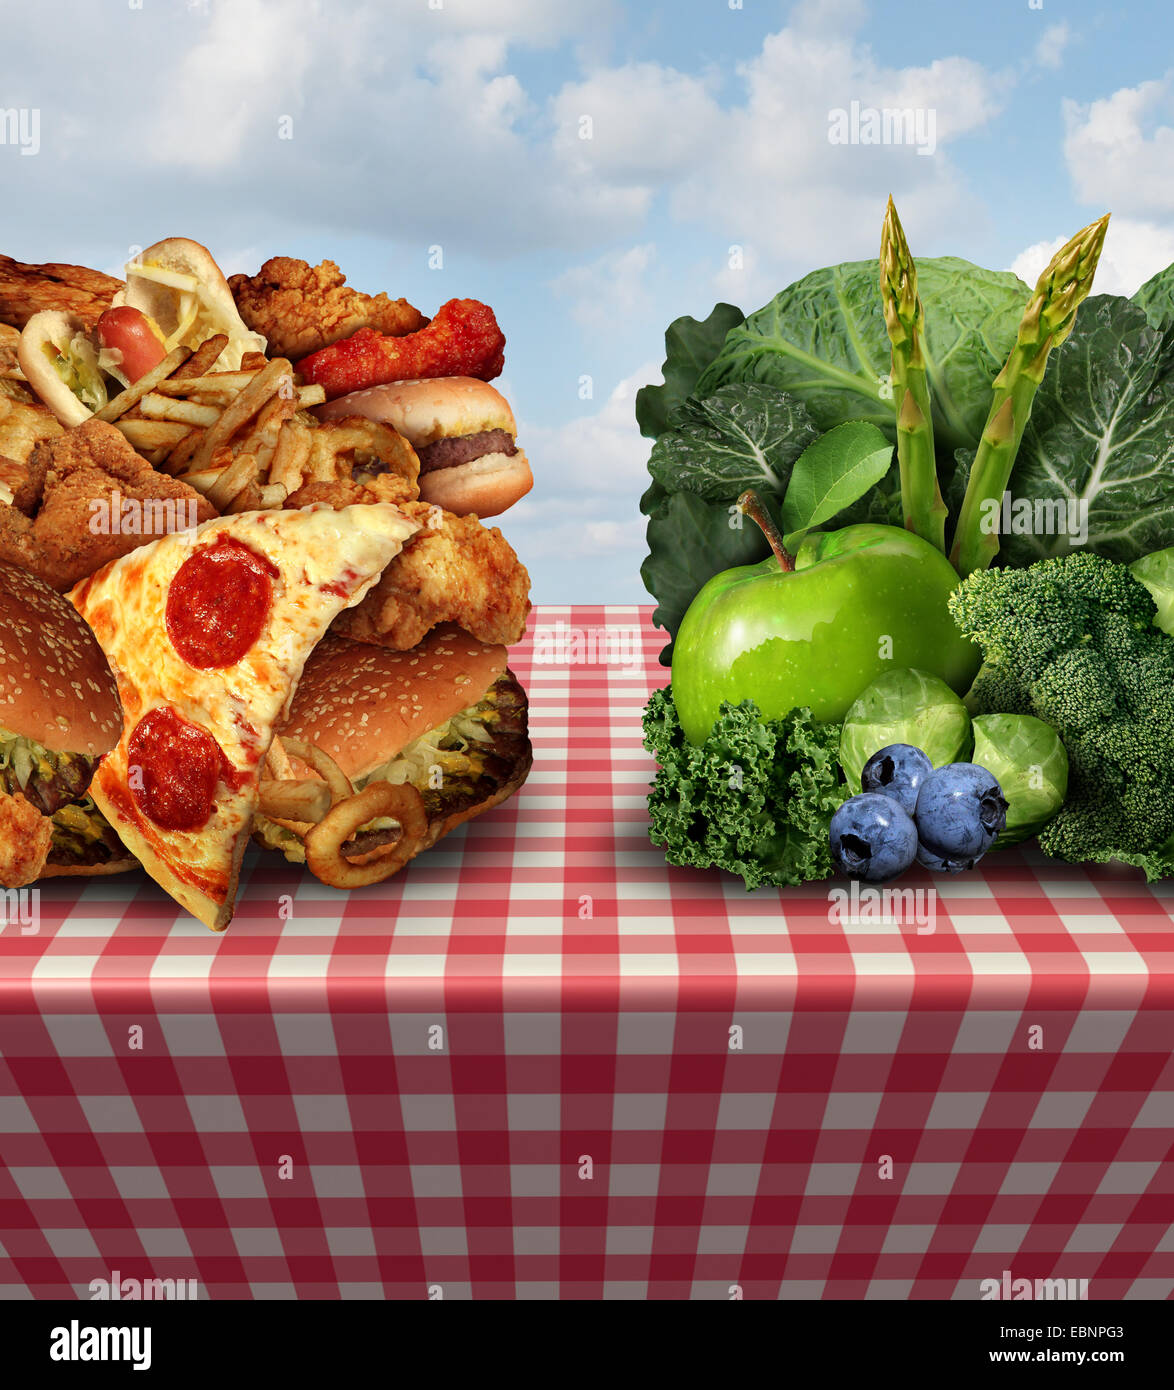 Healthy living concept and diet decision symbol or nutrition choices dilemma between healthy good fresh fruit and - Stock Image